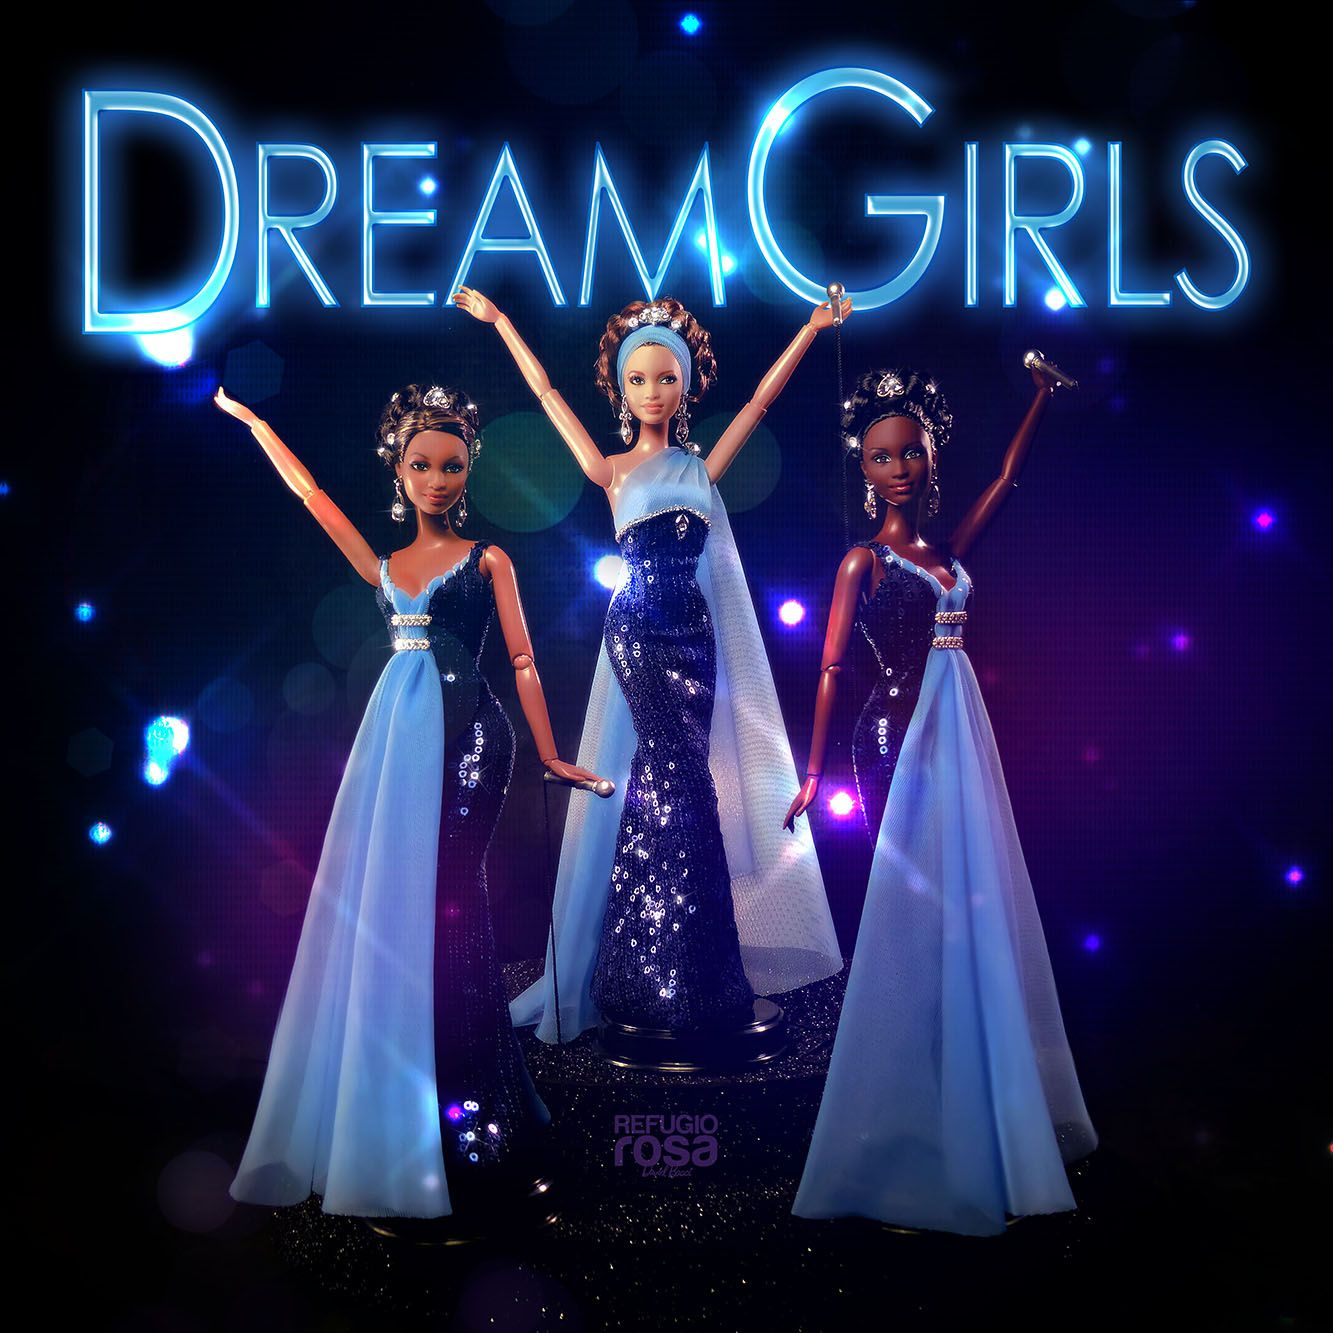 Dream Girl Barbies - Refugio Rosa (David Bocci)